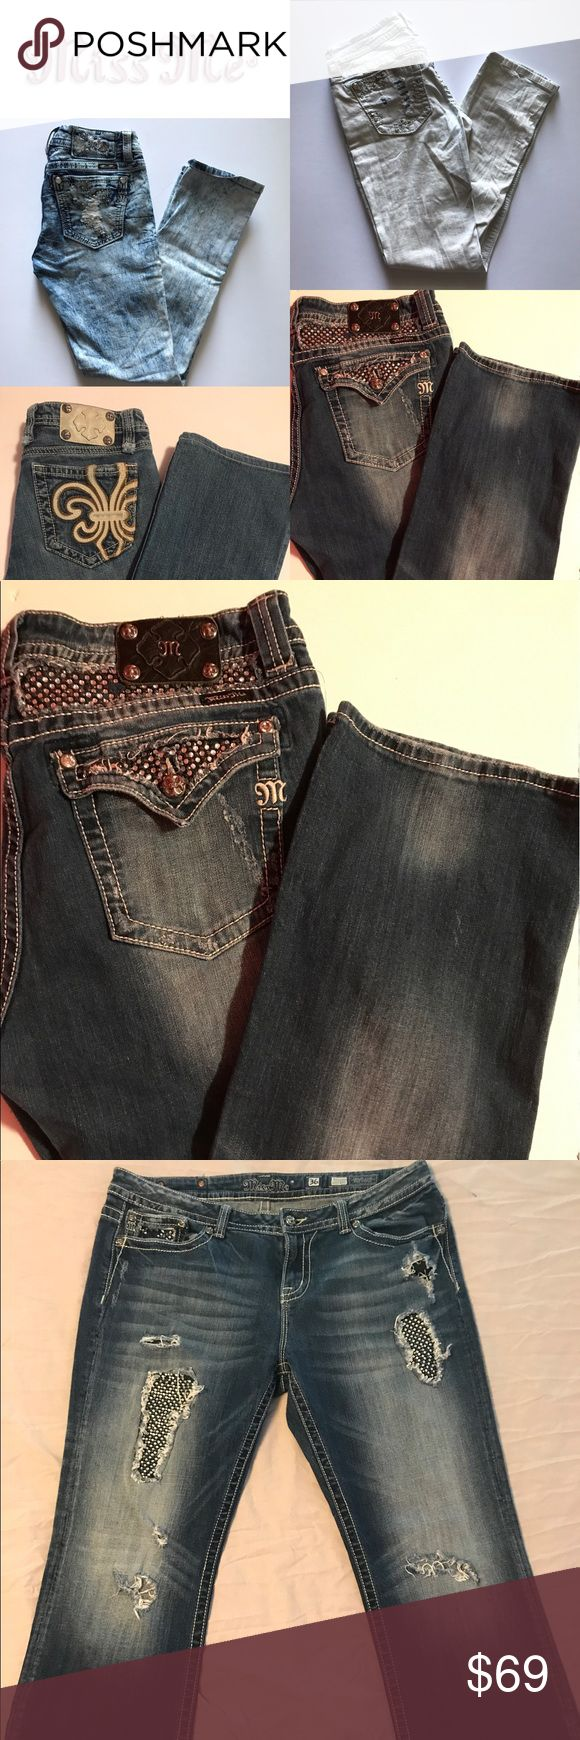 Miss Me Jeans Miss Me Destroyed Jeans Bootcut with Rhinestone Encrusted Patches and Back Pockets 36 x 31 or size 20.  Please Note there are multiple destroyed areas that are part of the design. Miss Me Jeans